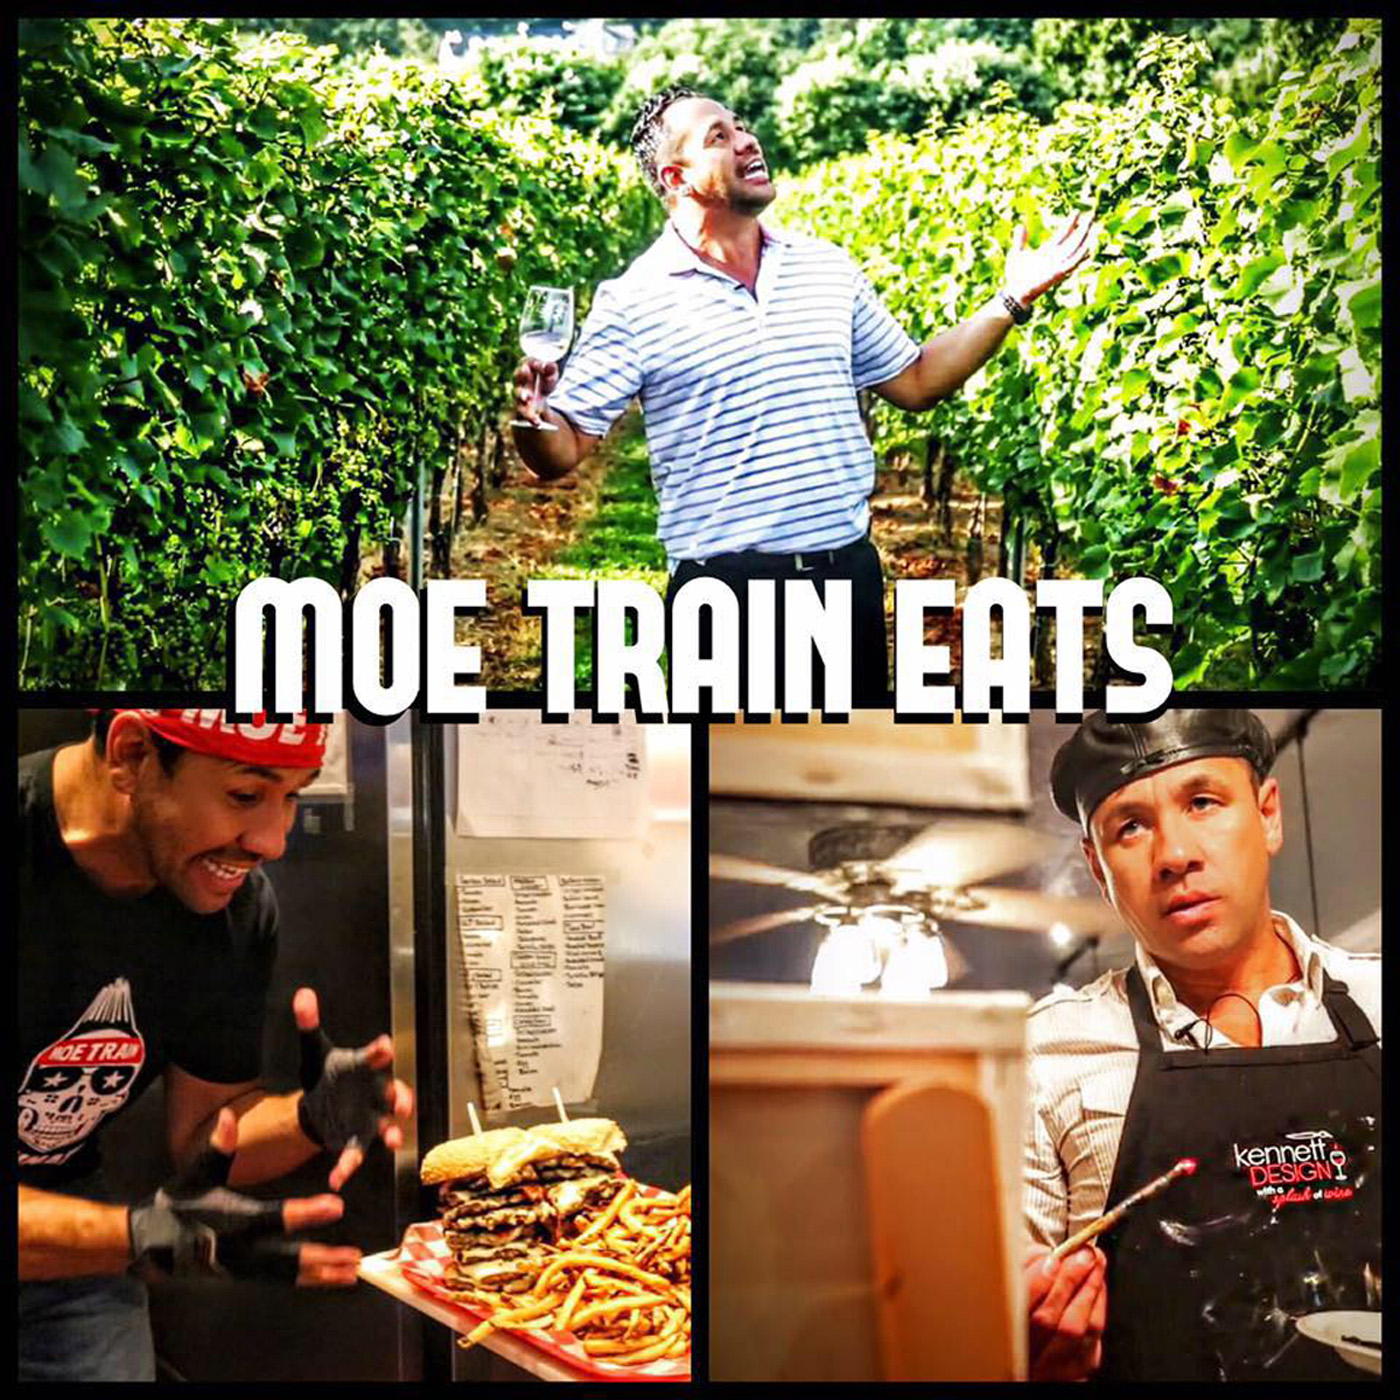 Moe Train Eats Podcast (Food, Beer, Wine, Drink, Art, Music and Lifestyle Show) logo